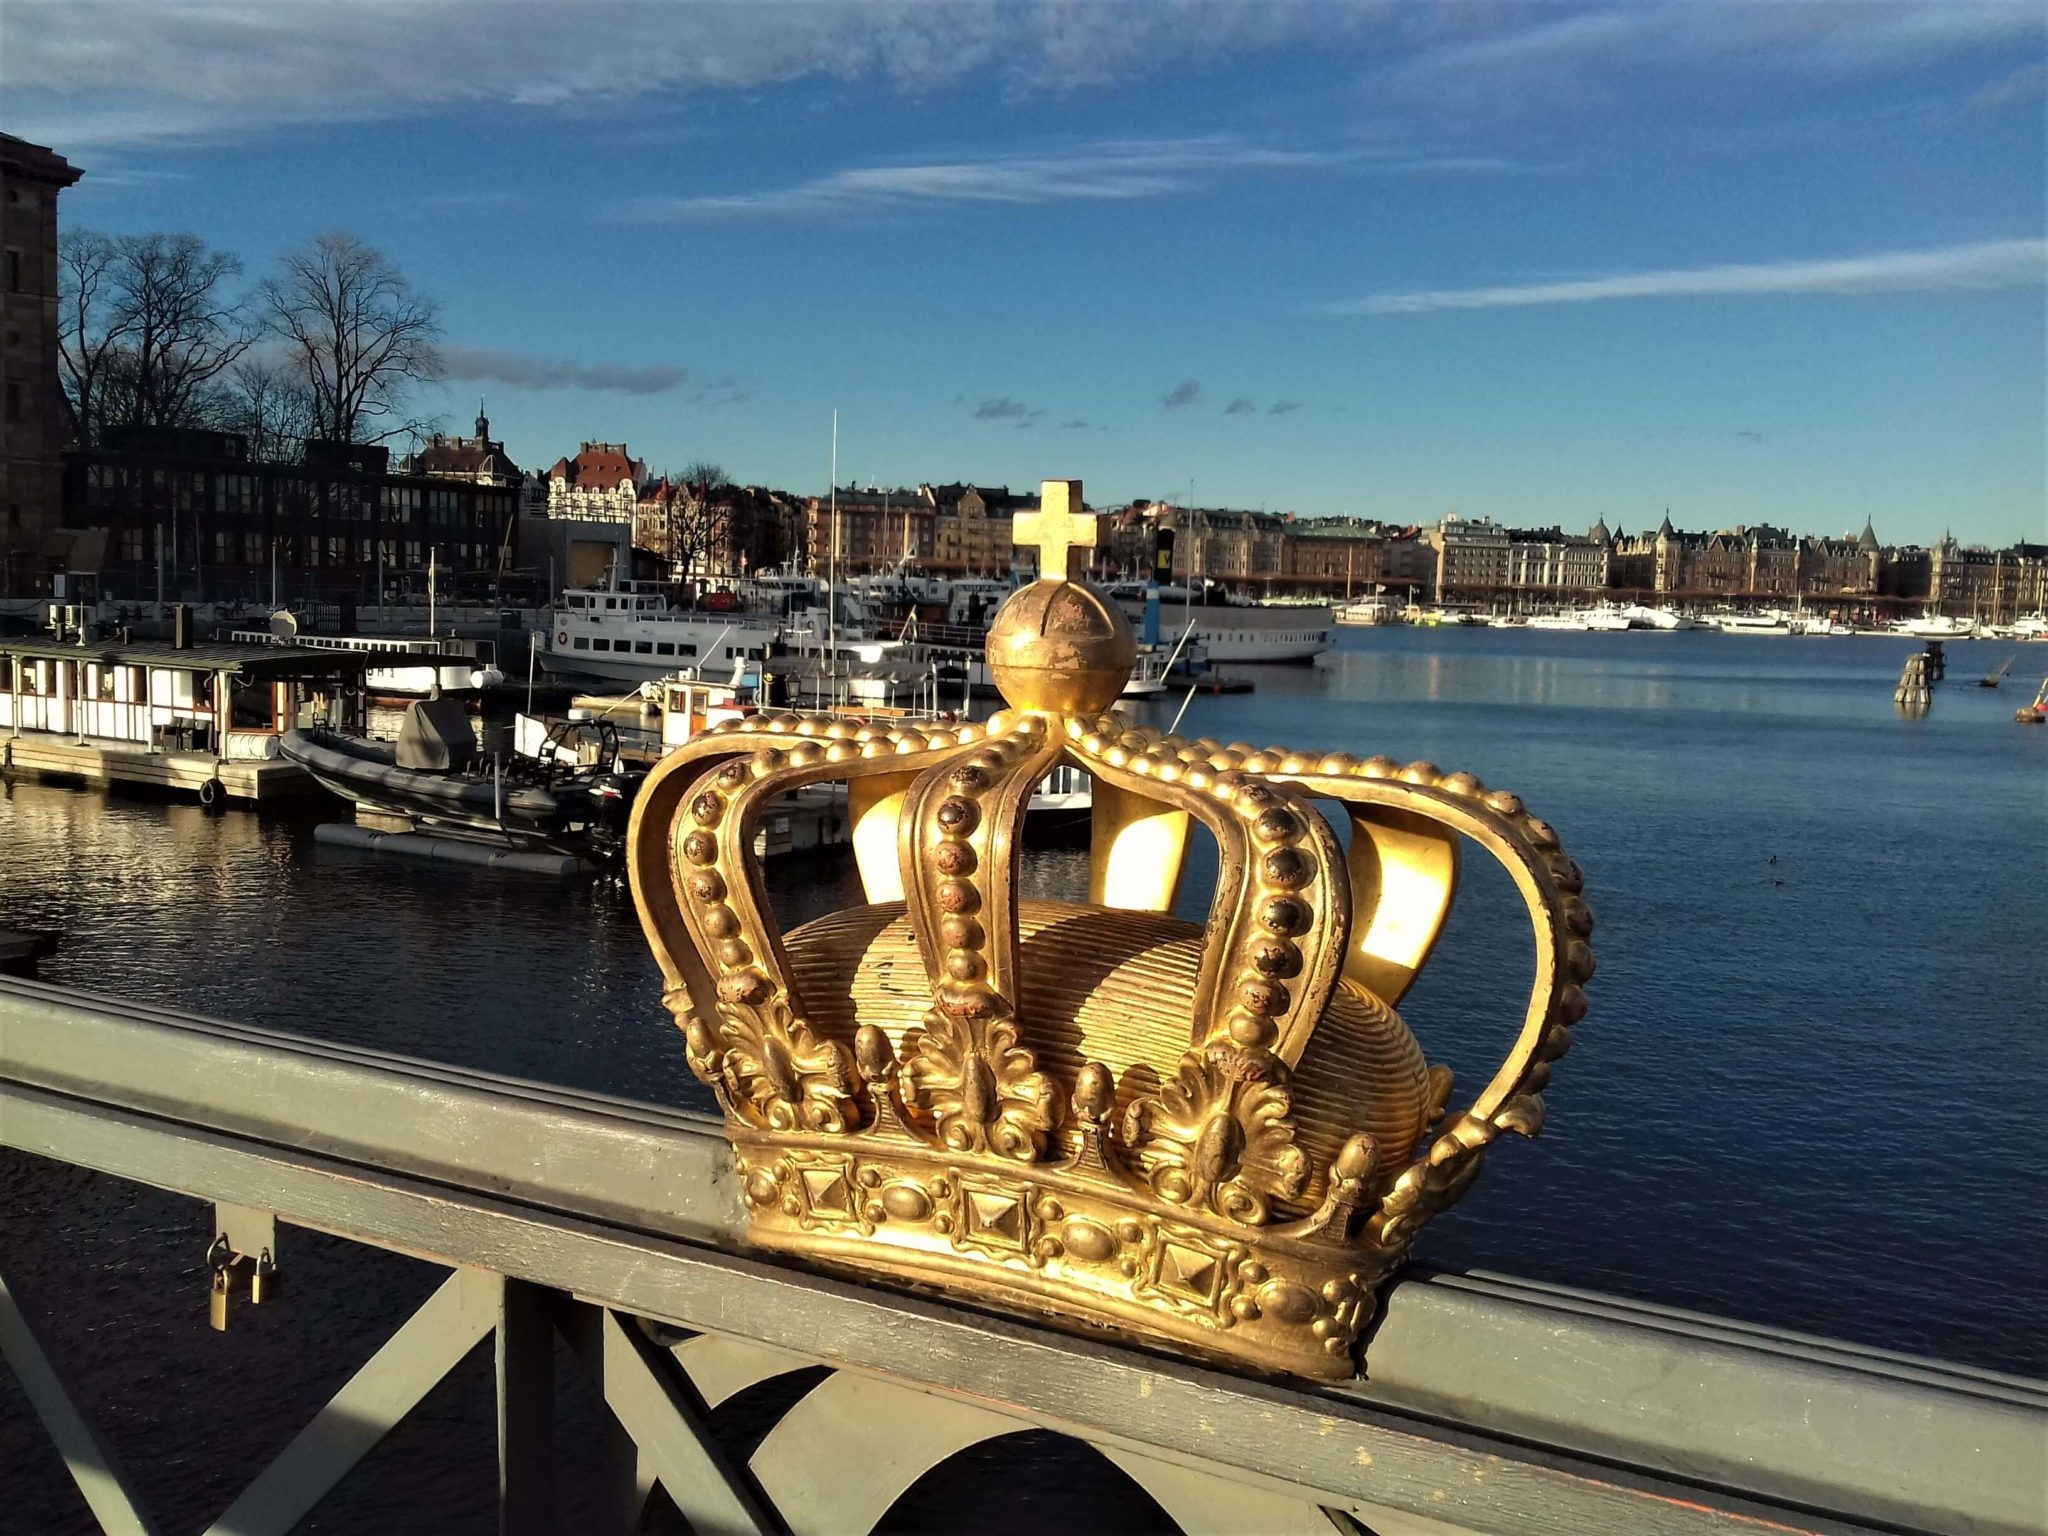 Crown on the bridge